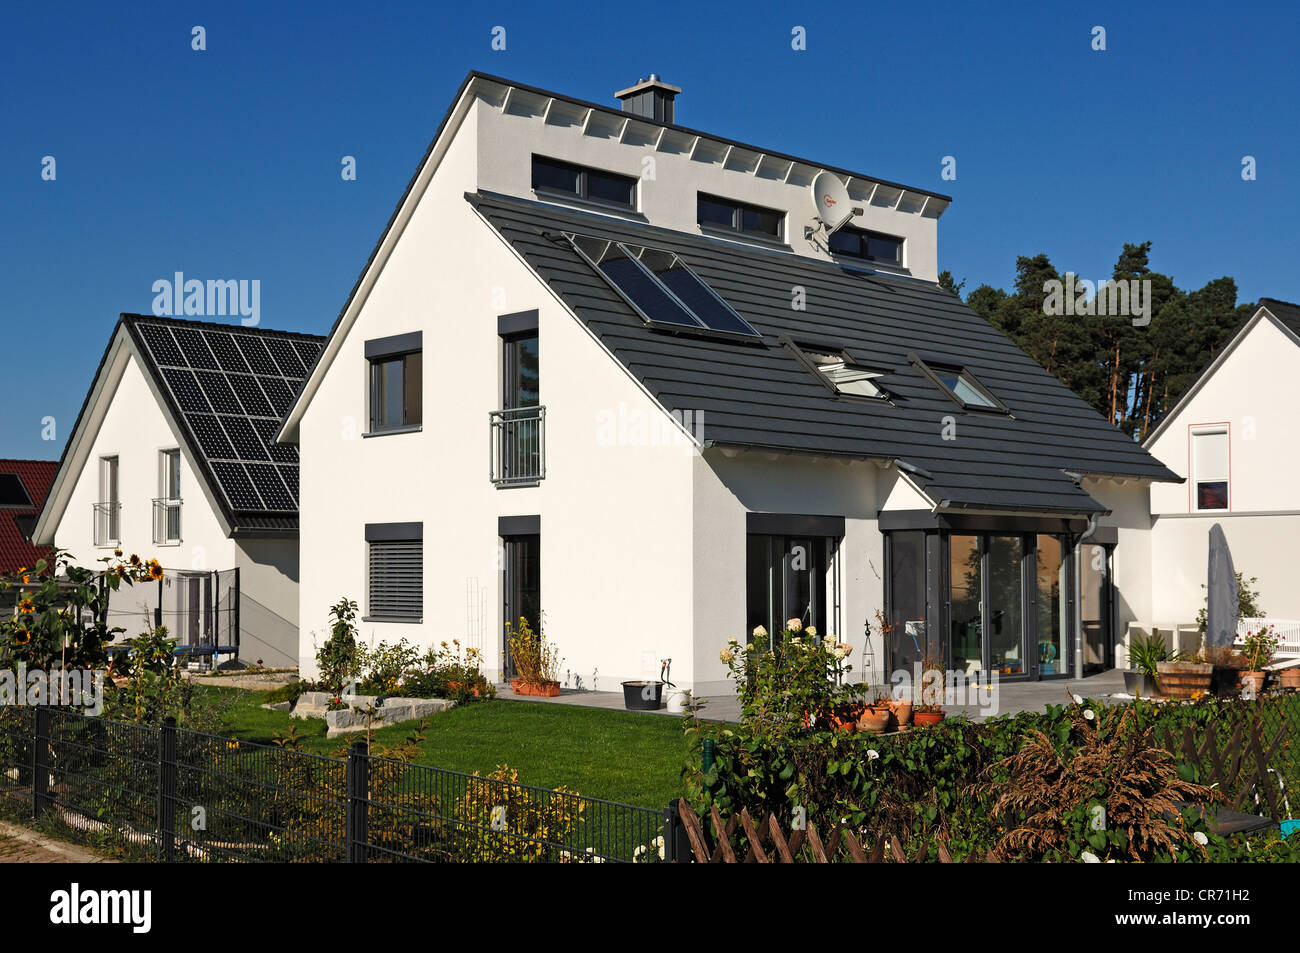 Recently completed house and garden with solar panels on the roof, Tauchersreuth, Middle Franconia, Bavaria, Germany, - Stock Image